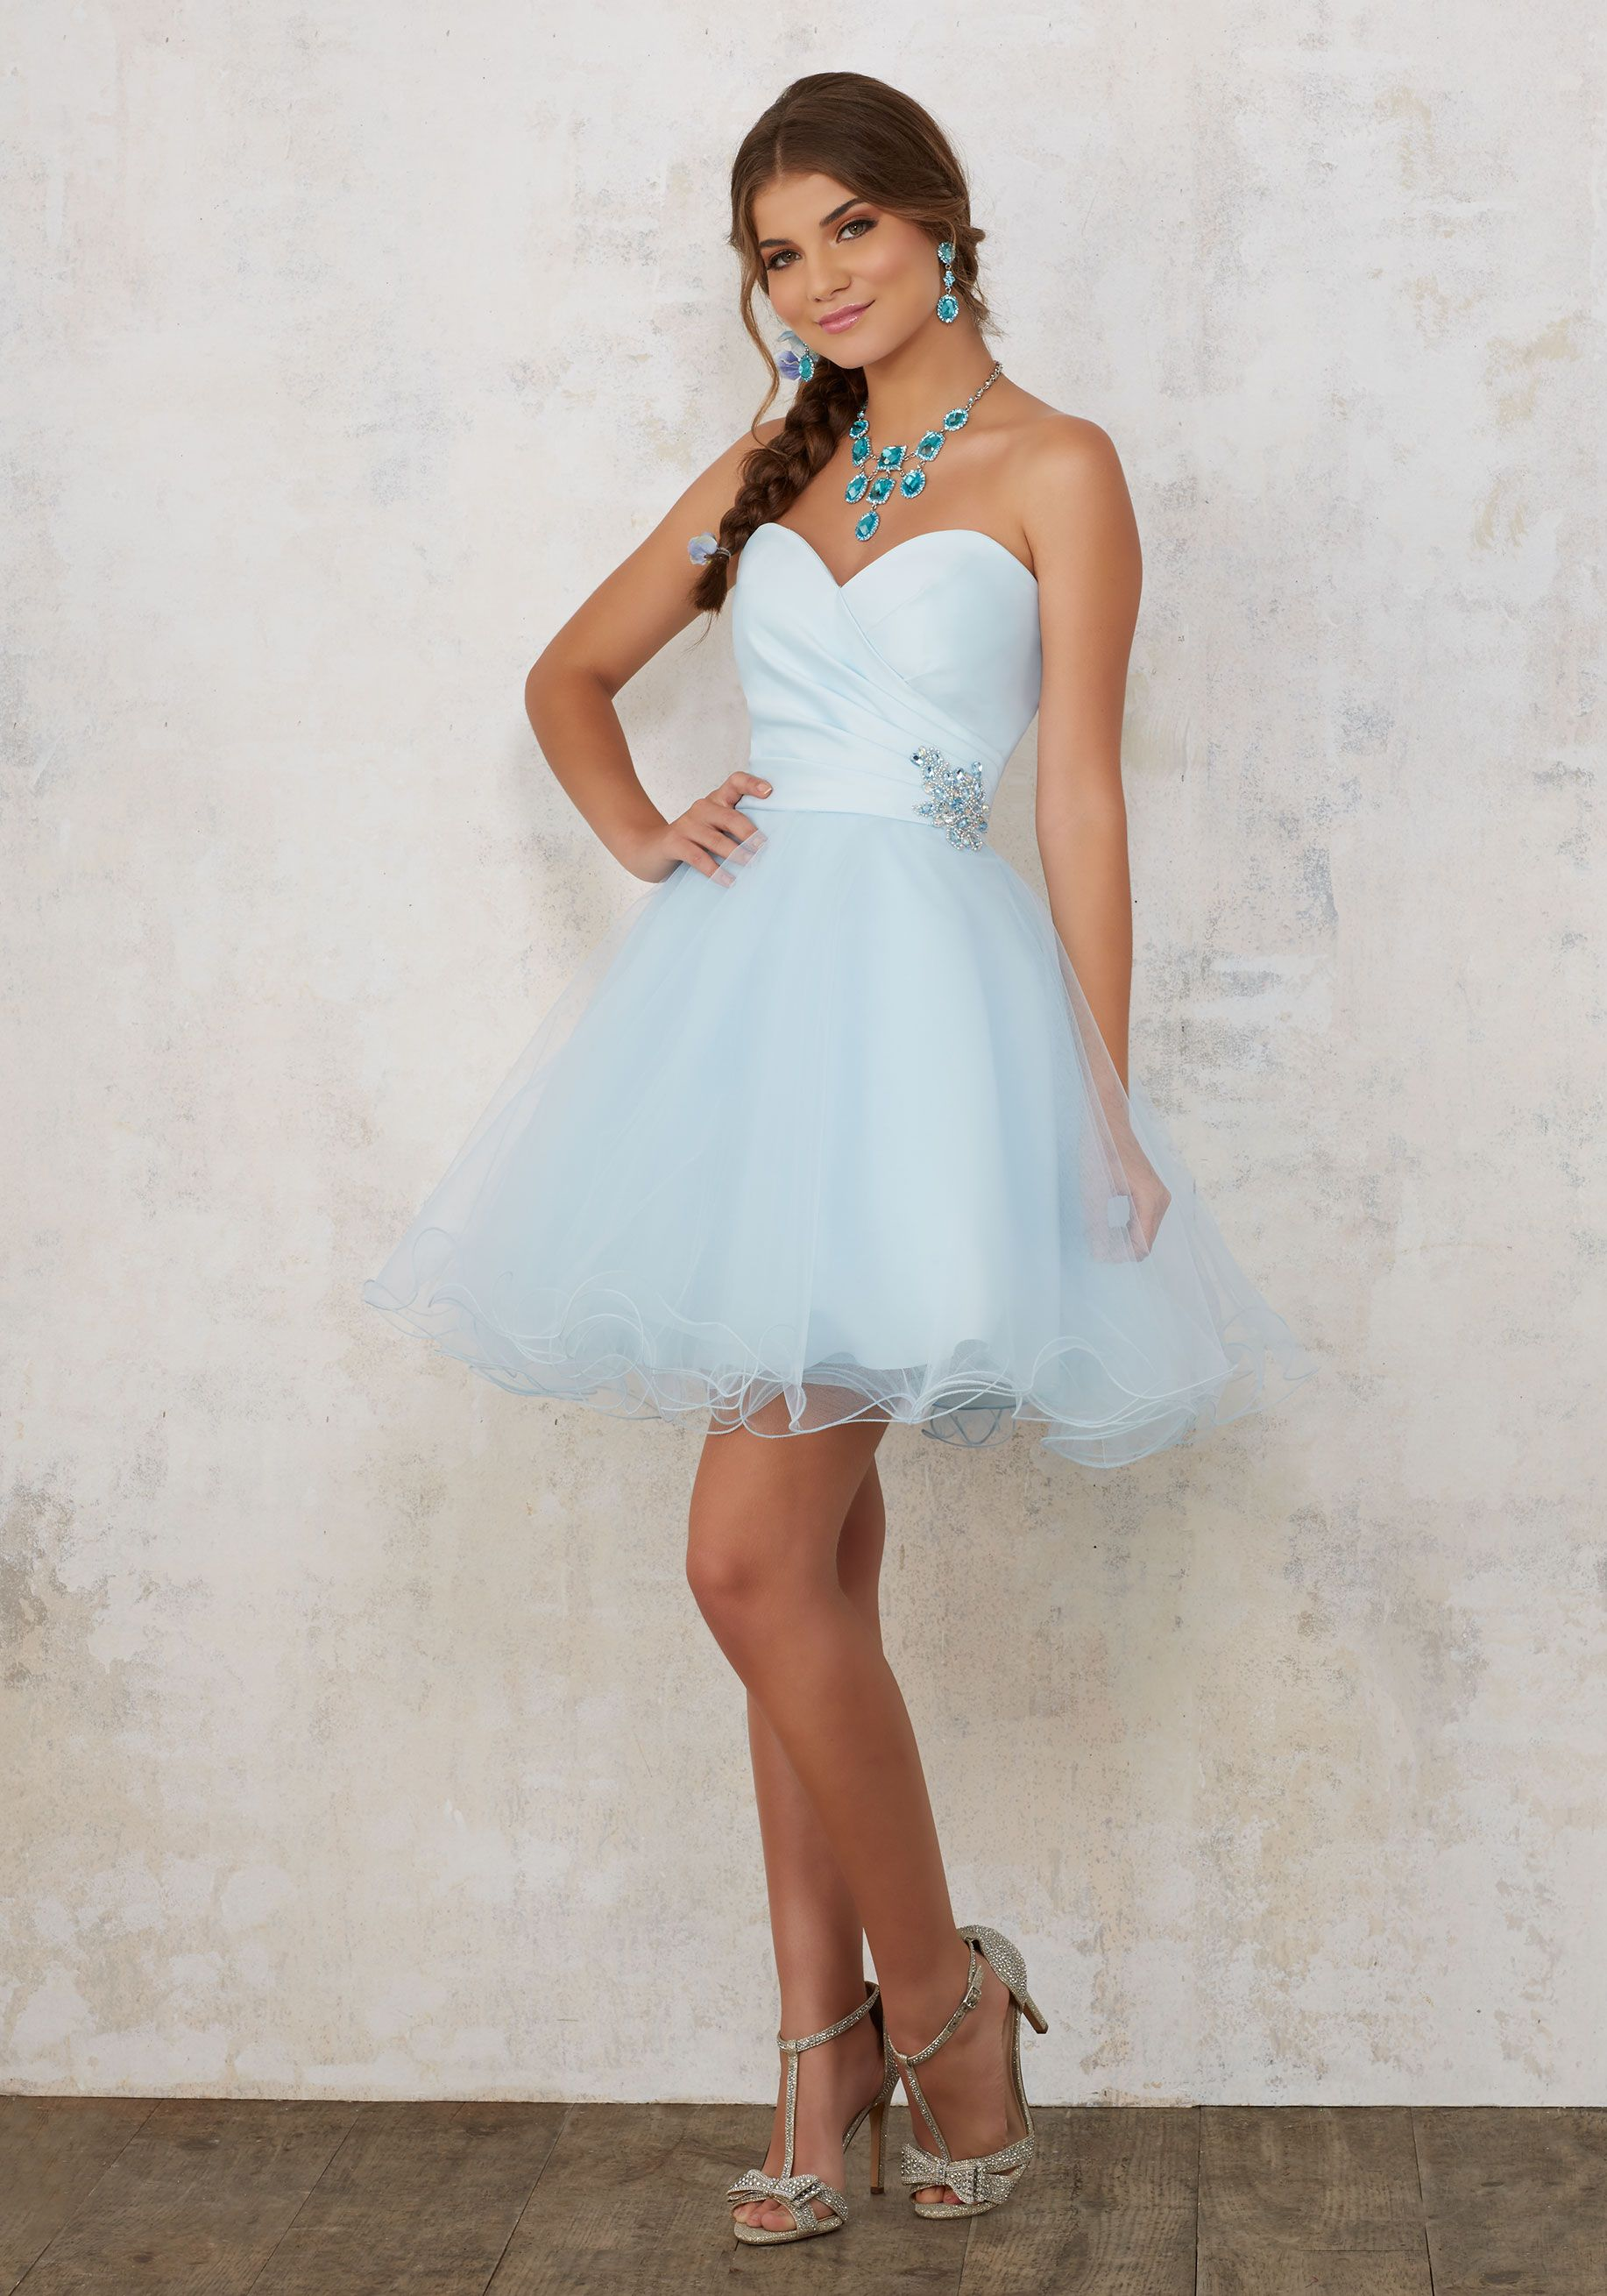 Satin And Tulle Damas Dress With Beading Morilee Dama Dresses Quinceanera Dama Dresses Cocktail Dress Prom [ 2620 x 1834 Pixel ]